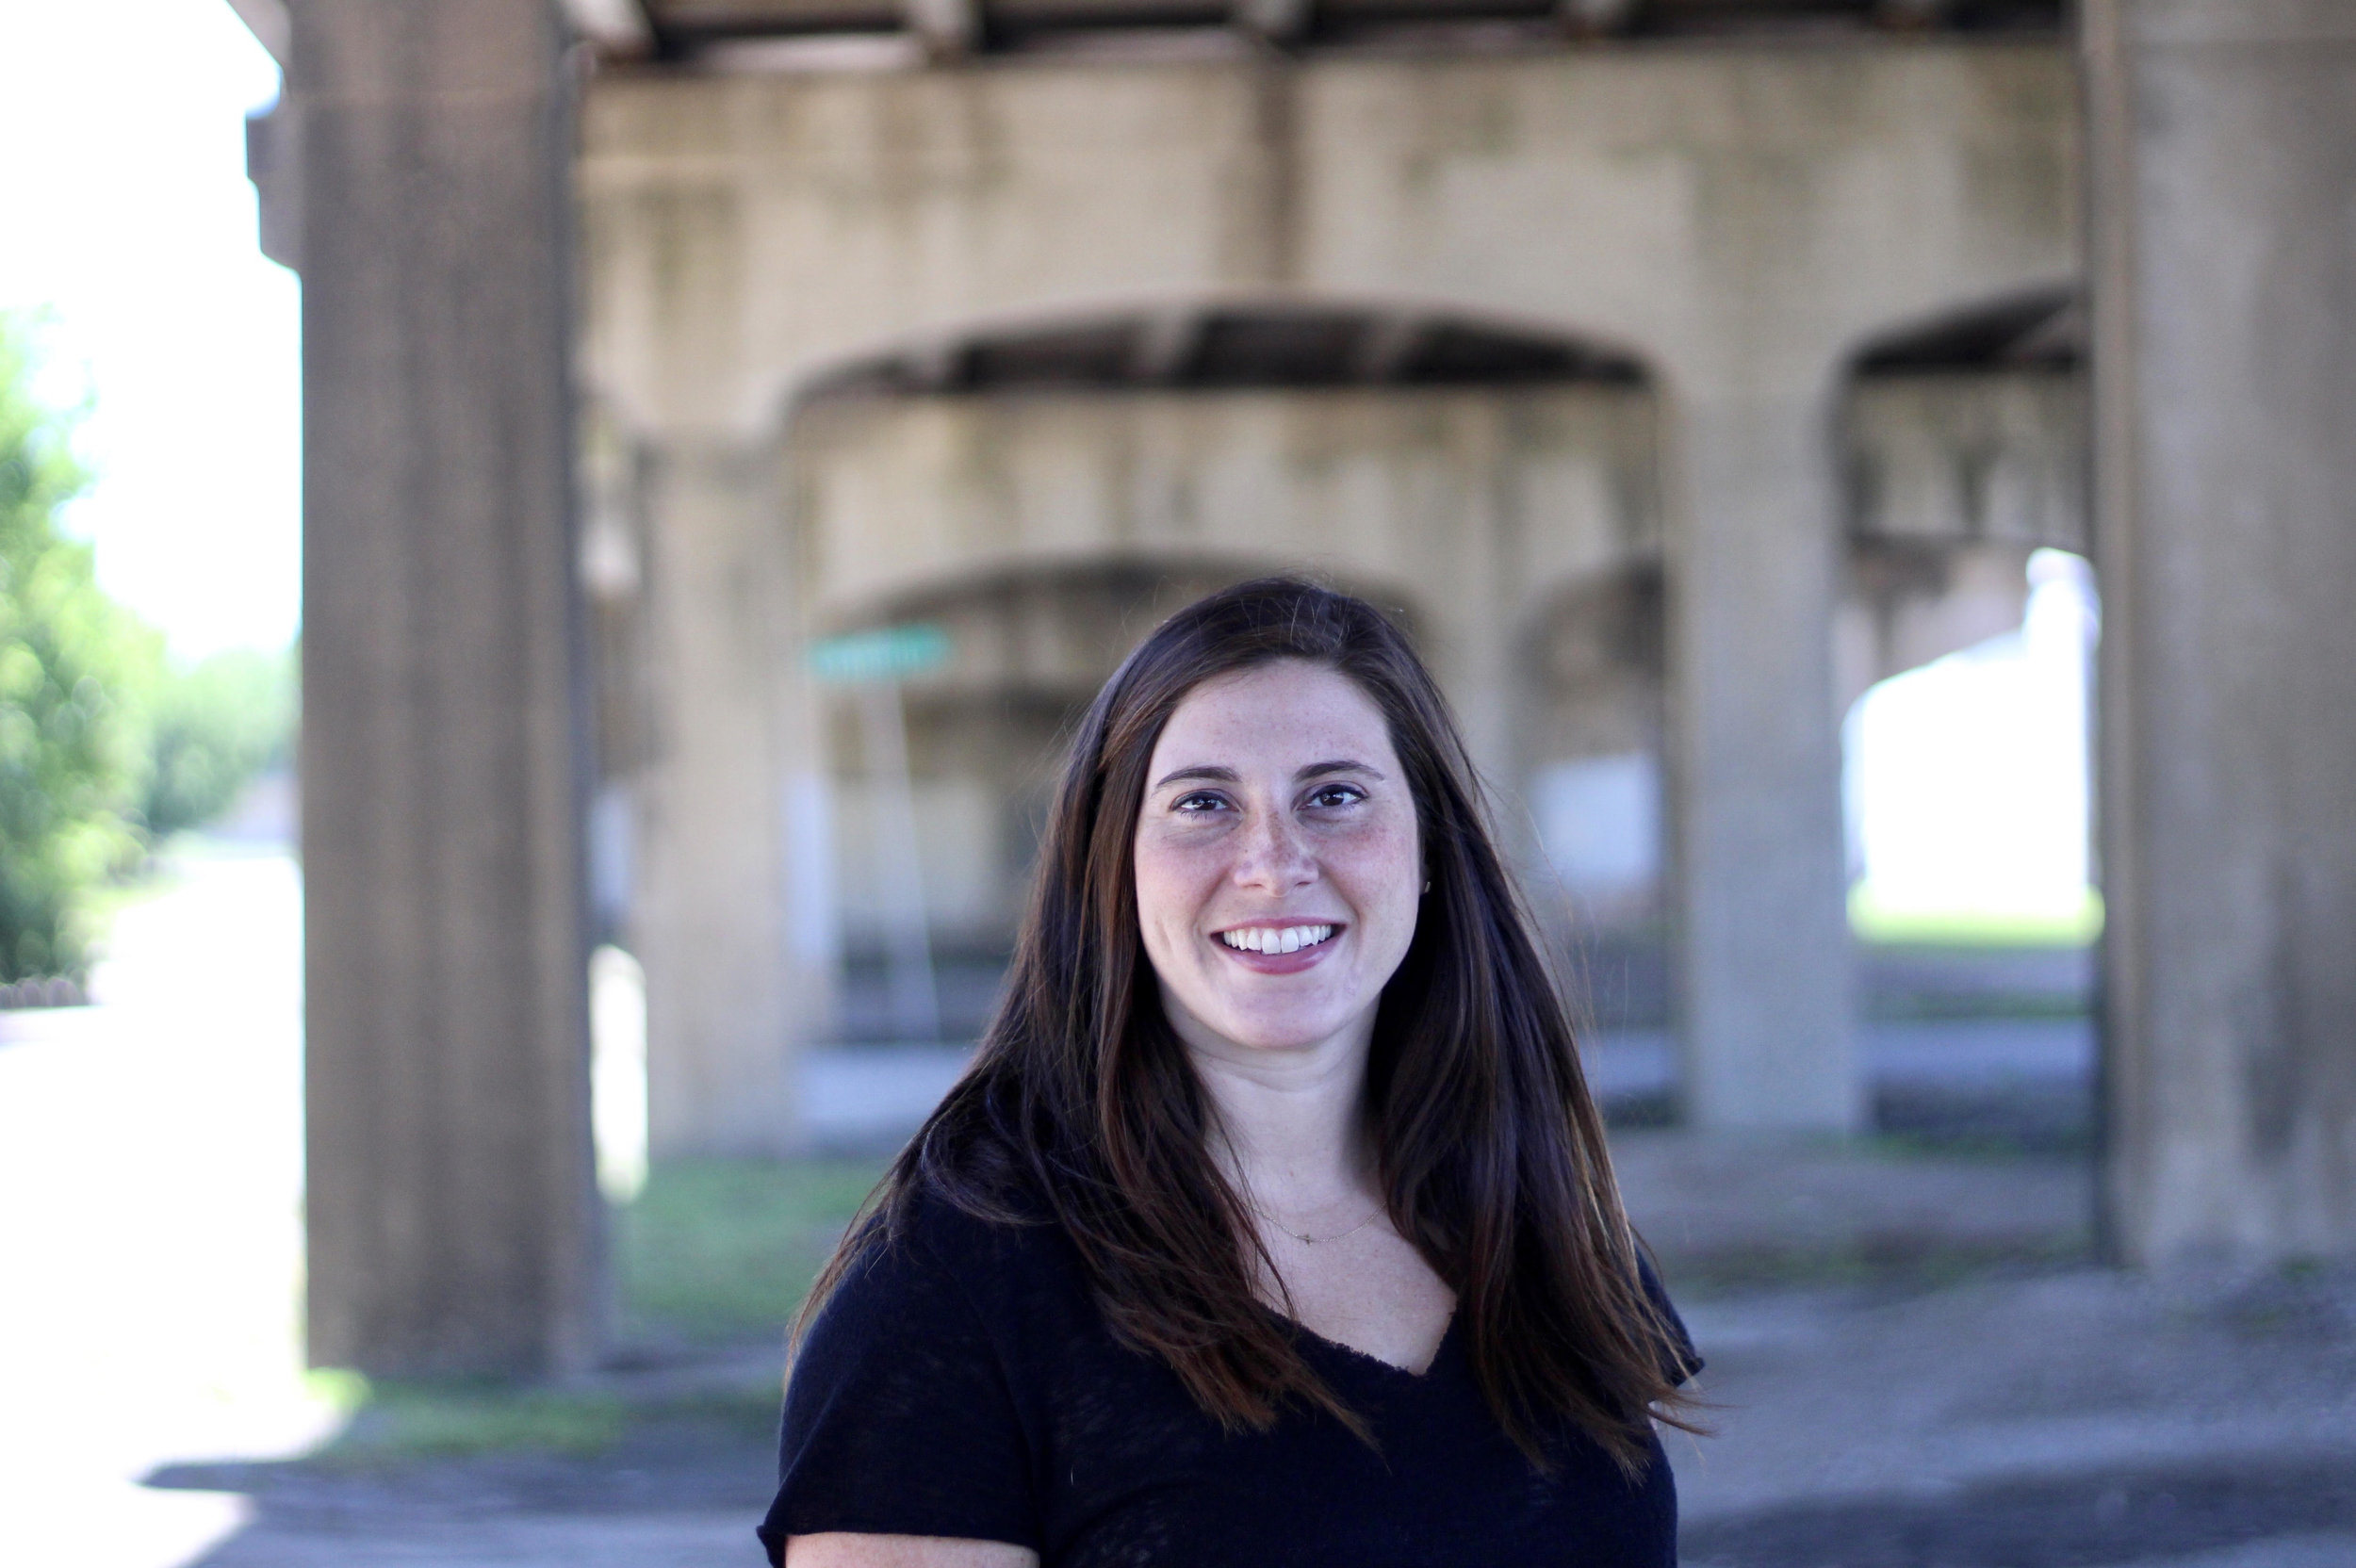 Hayley Ruffner, Advocacy Manager